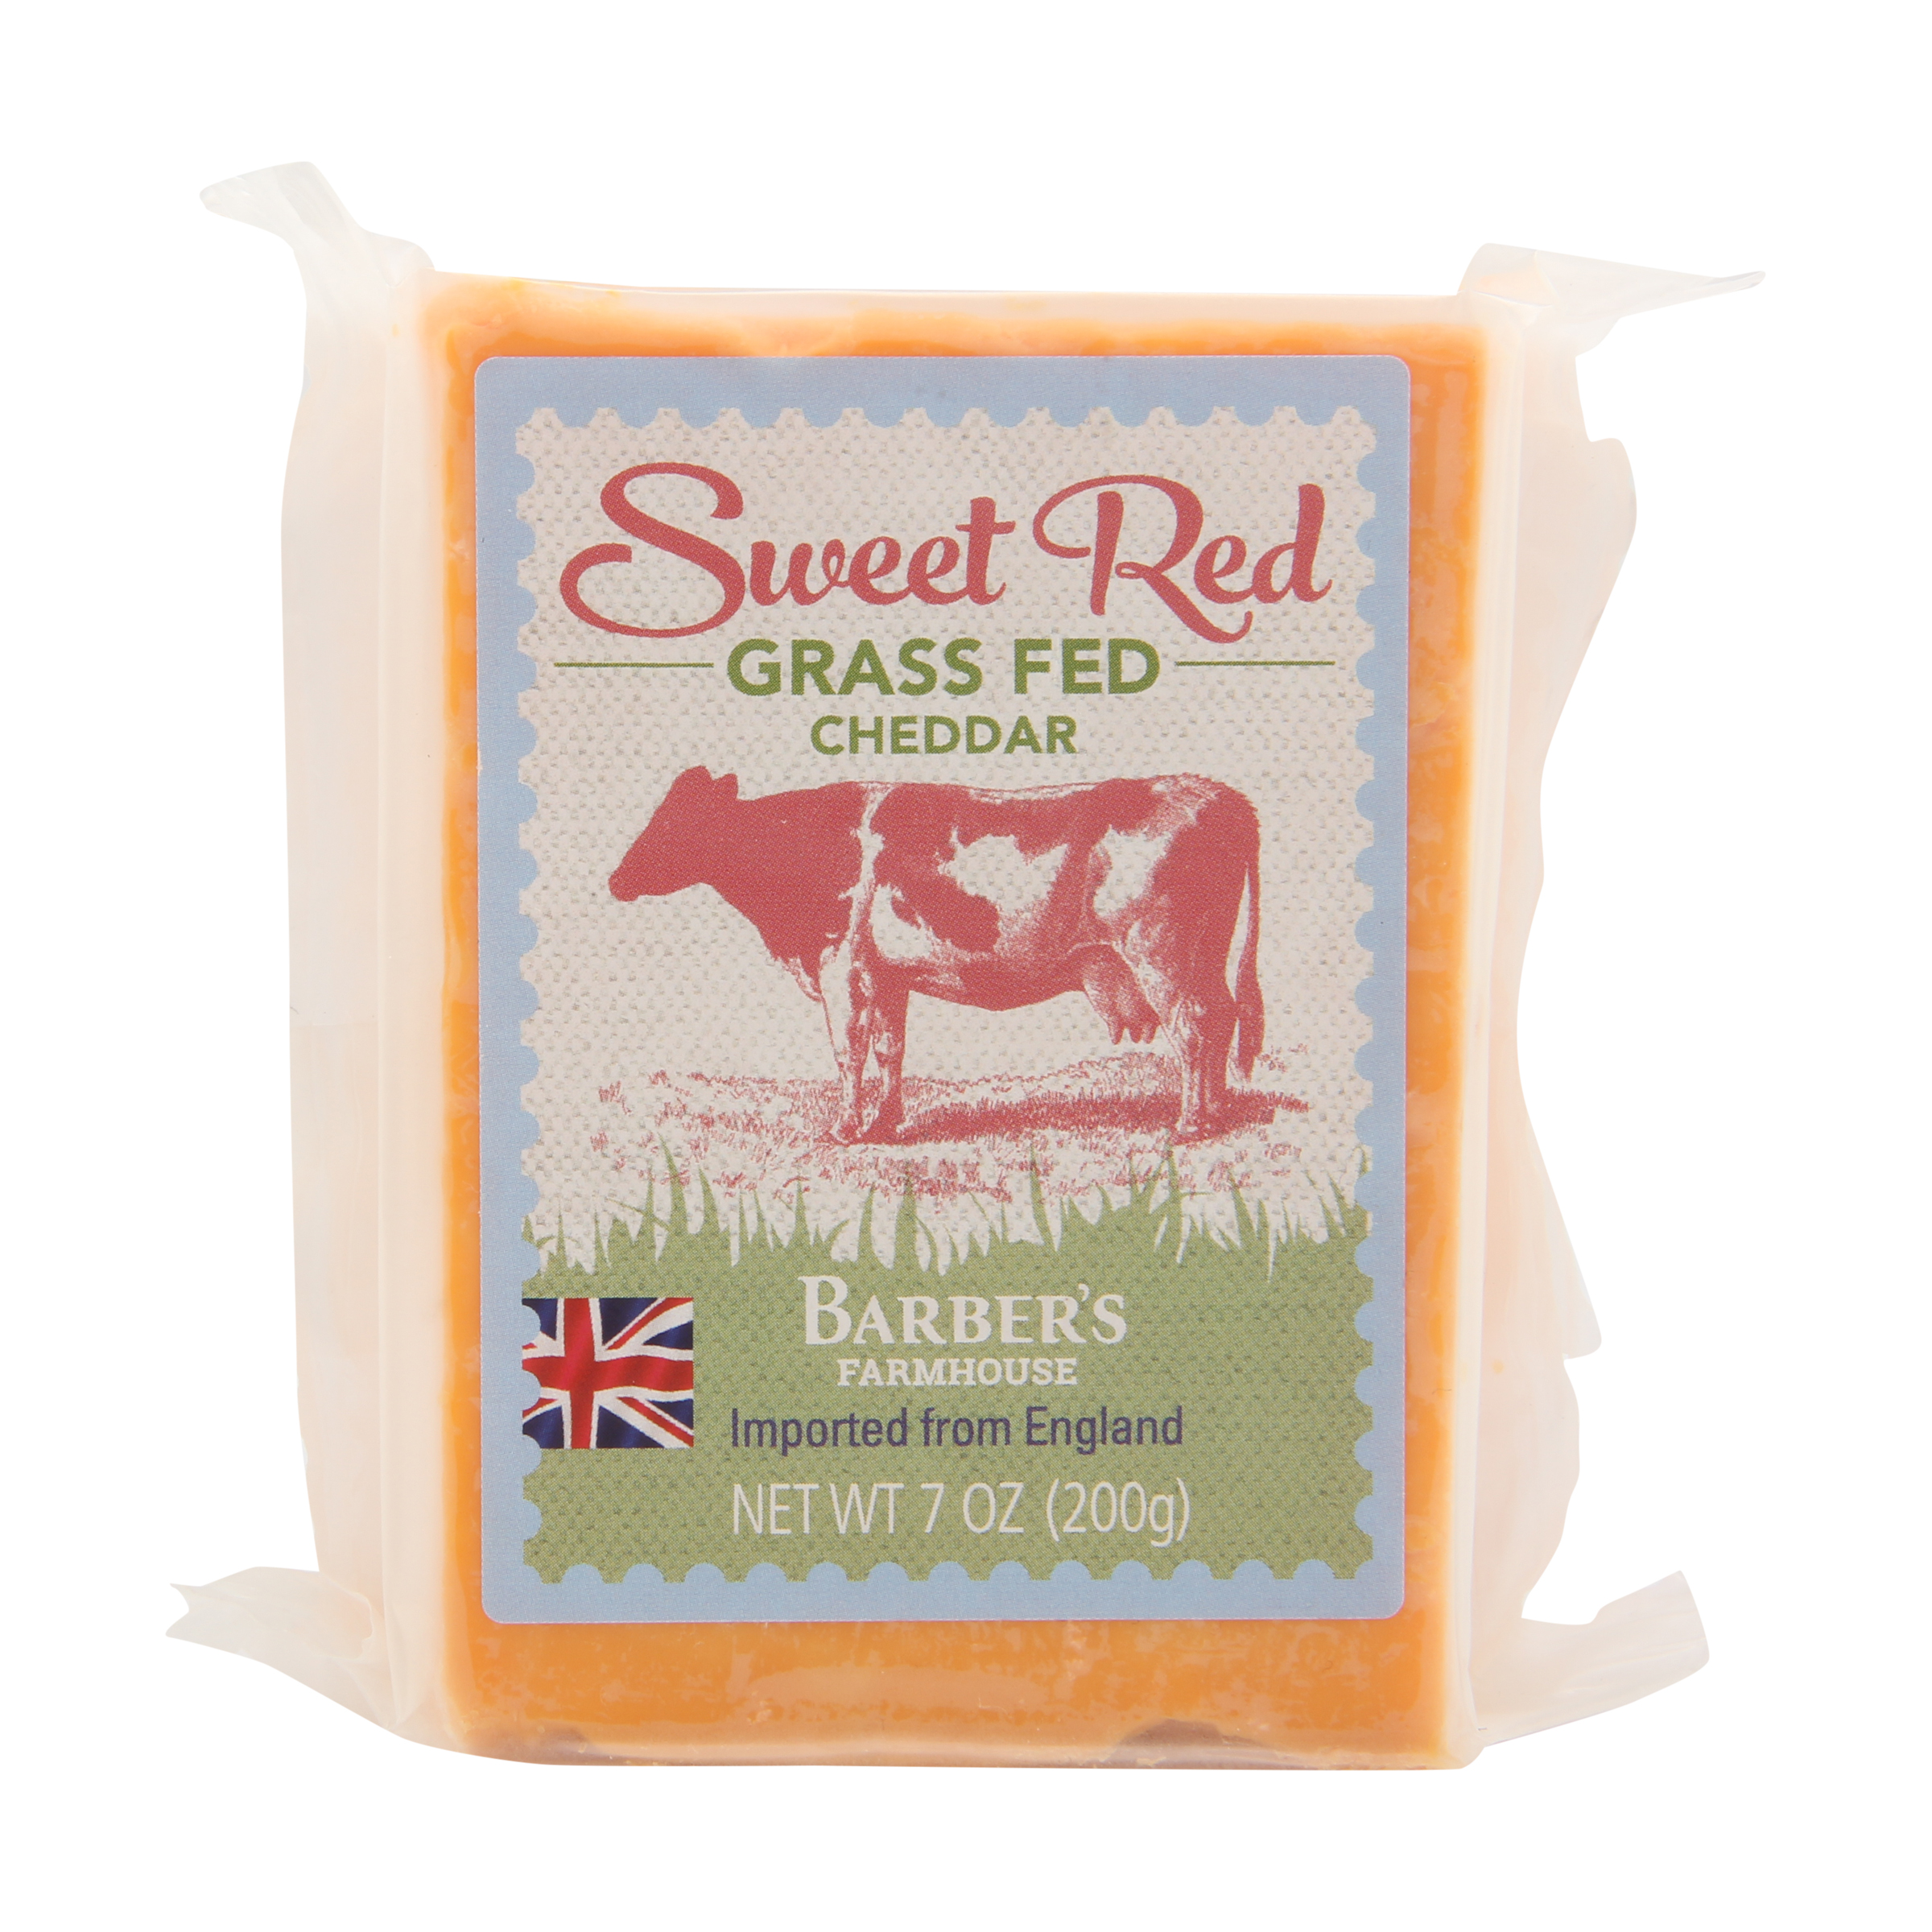 Sweet Red Grass-Fed Cheddar